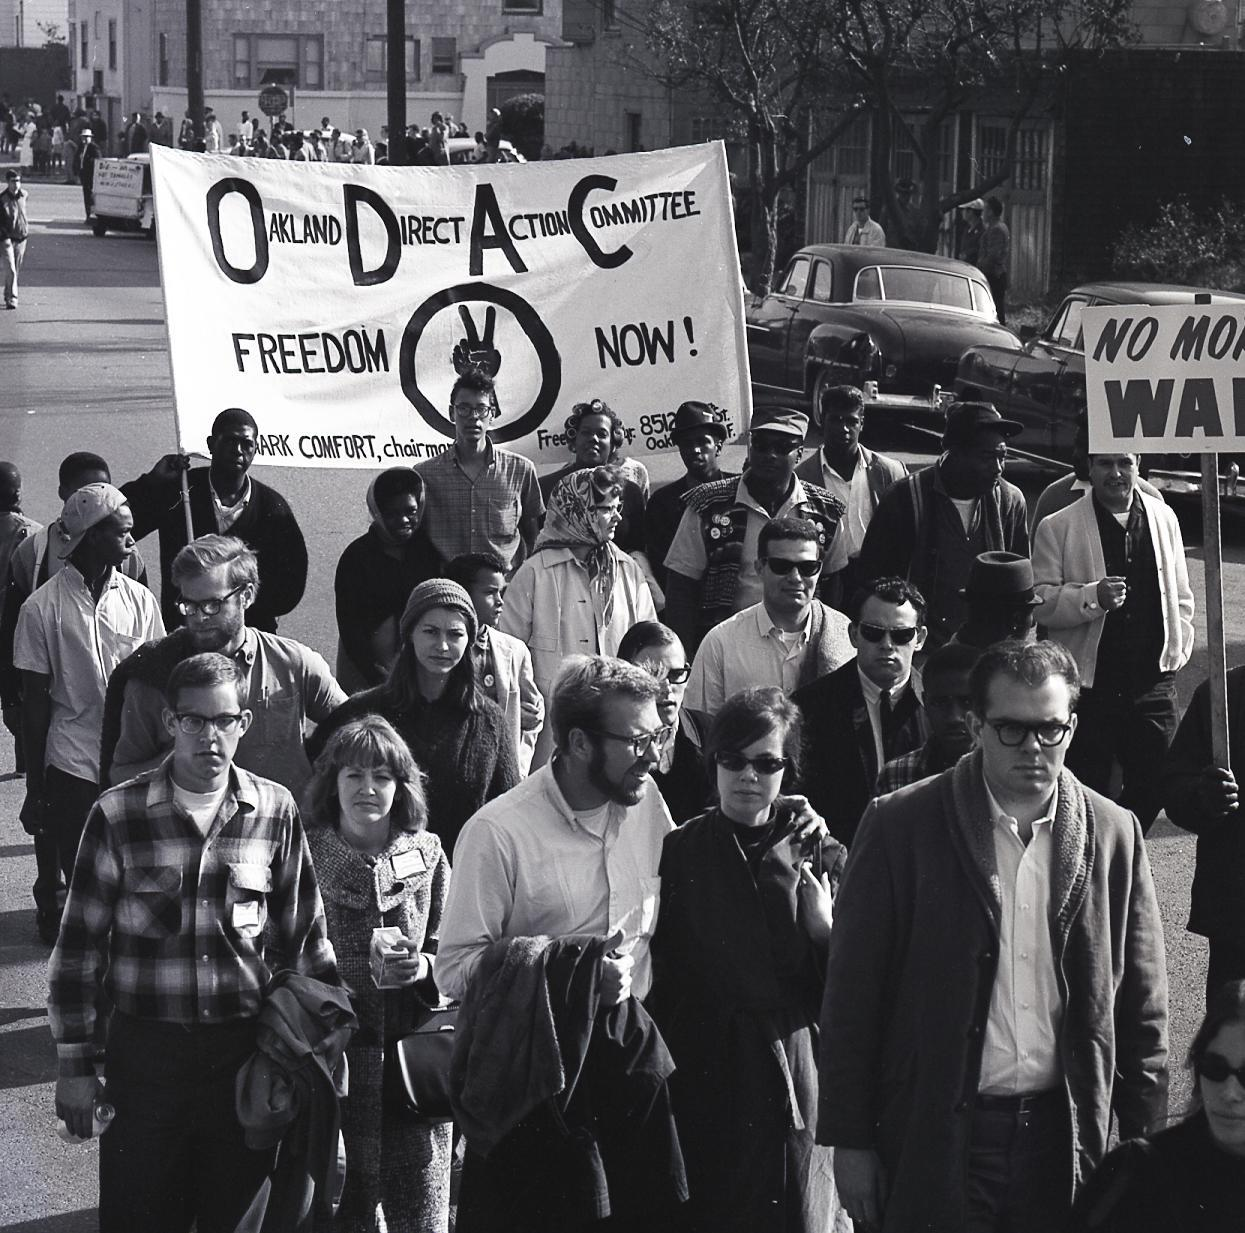 Vietnam Day Committee Protest, November 20, 1965